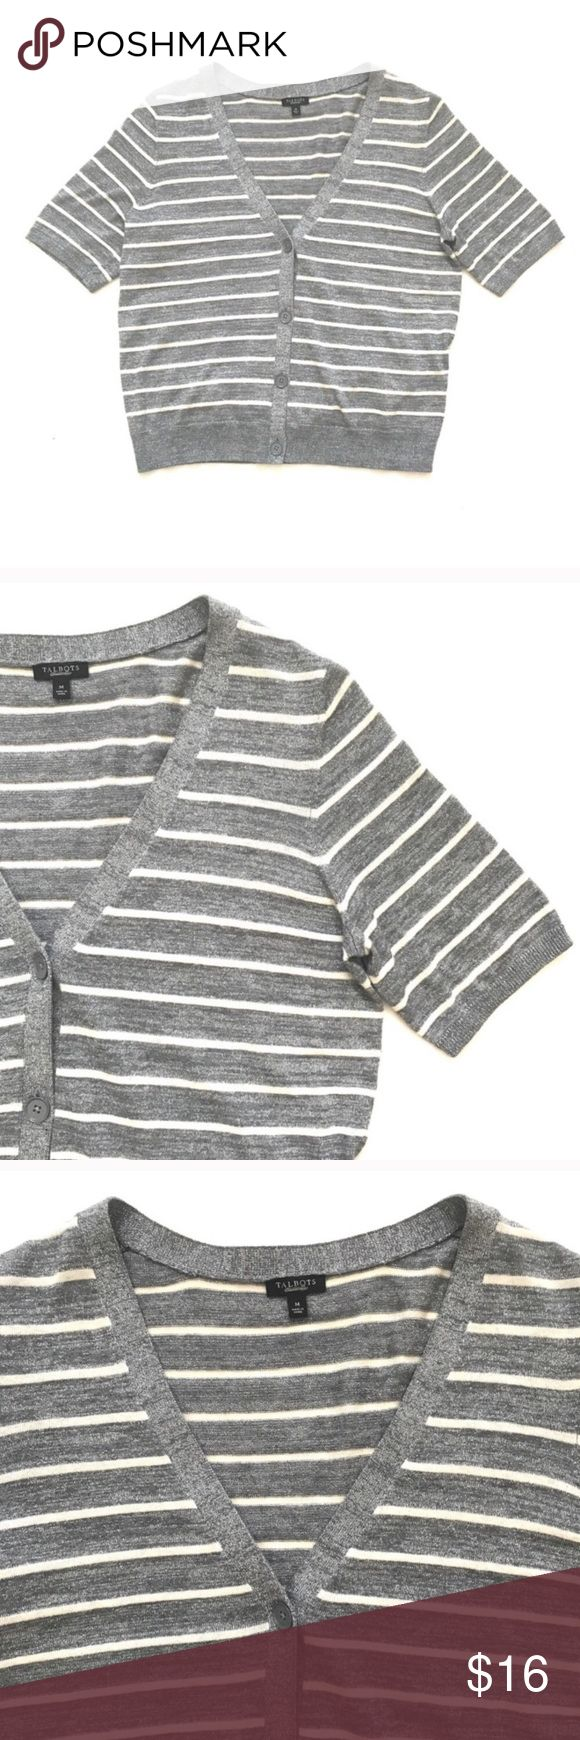 """Talbots Gray Striped Metallic Cardigan Talbots Gray Striped Metallic Cardigan Gray short sleeved cardigan by Talbots. Has Metallic threading. Buttons down the front.  Size Medium. Approx measurements lying flat: 19.5"""" bust, 22"""" length.  Excellent condition. No trades. Reasonable offers welcome Talbots Sweaters Cardigans"""